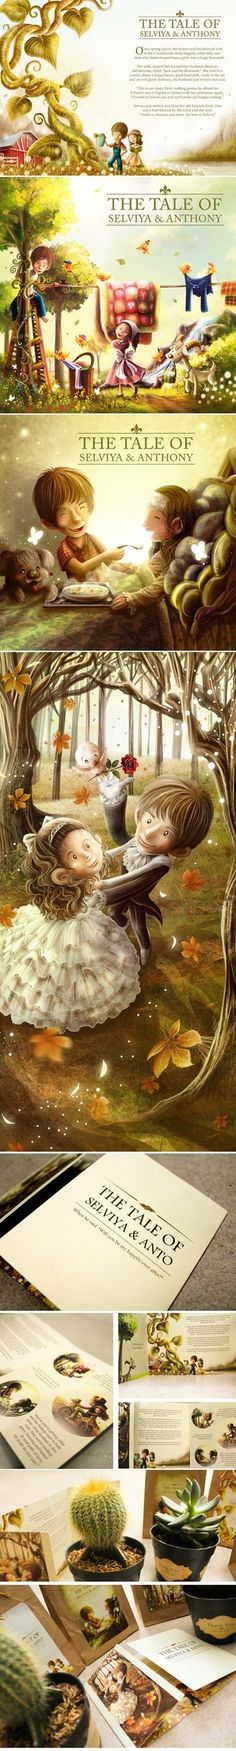 The Tale of Selviya and Anto 'Fairy Tale Wedding' by ~papercaptain on deviantART